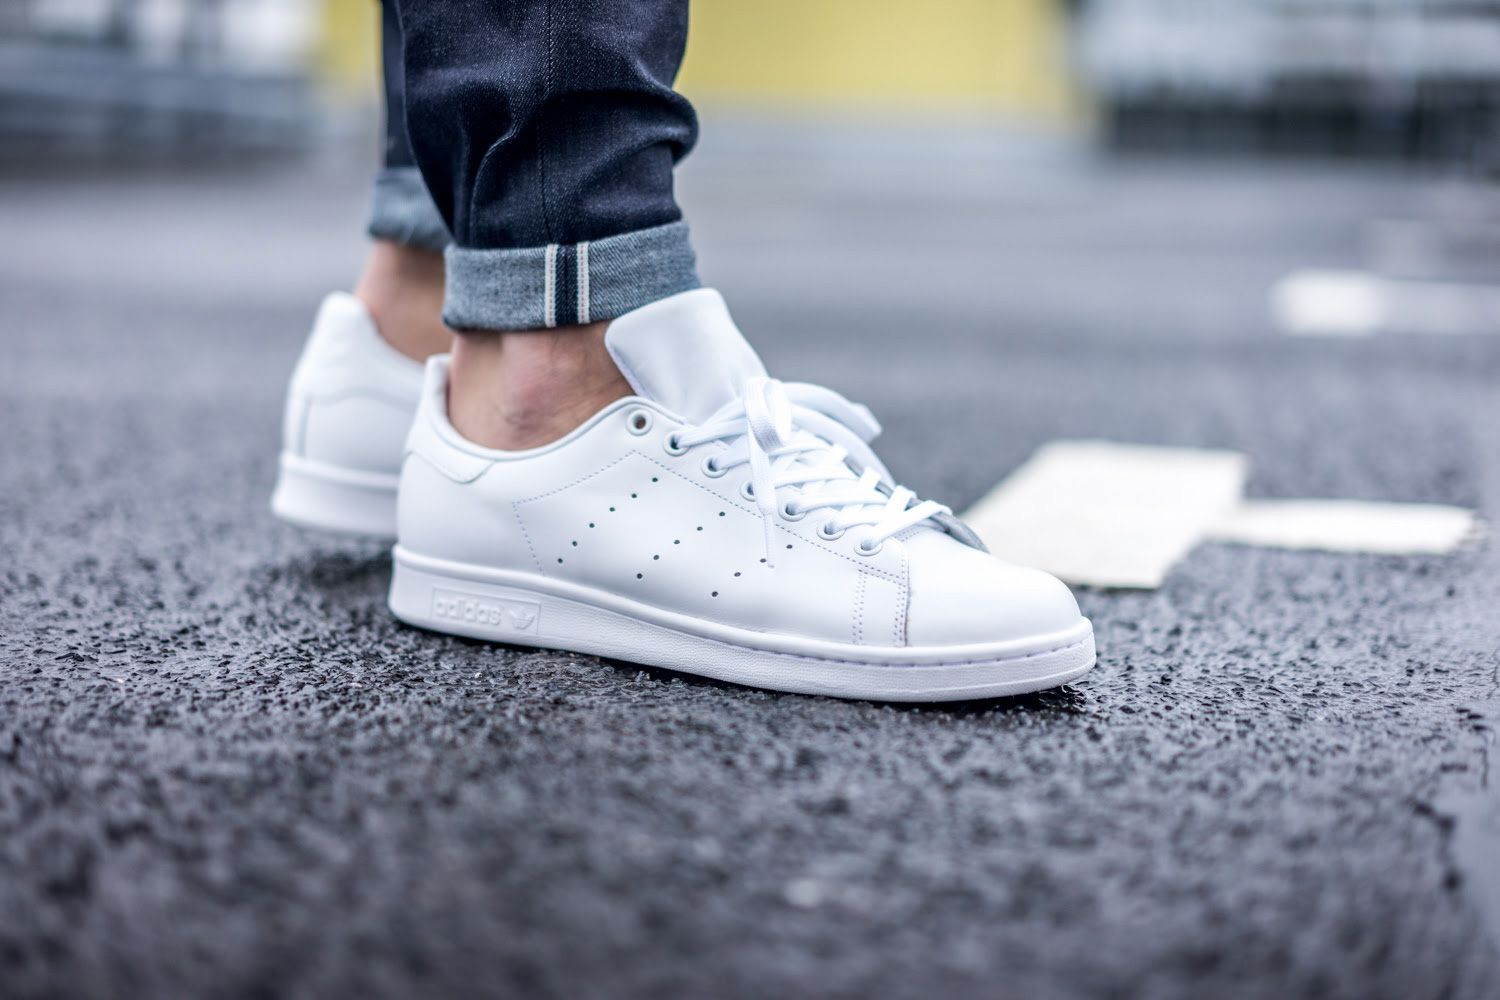 separation shoes 899ec d4c7c The adidas Stan Smith has undoubtedly experienced a resurgence from the  Three Stripes over the past year or so.